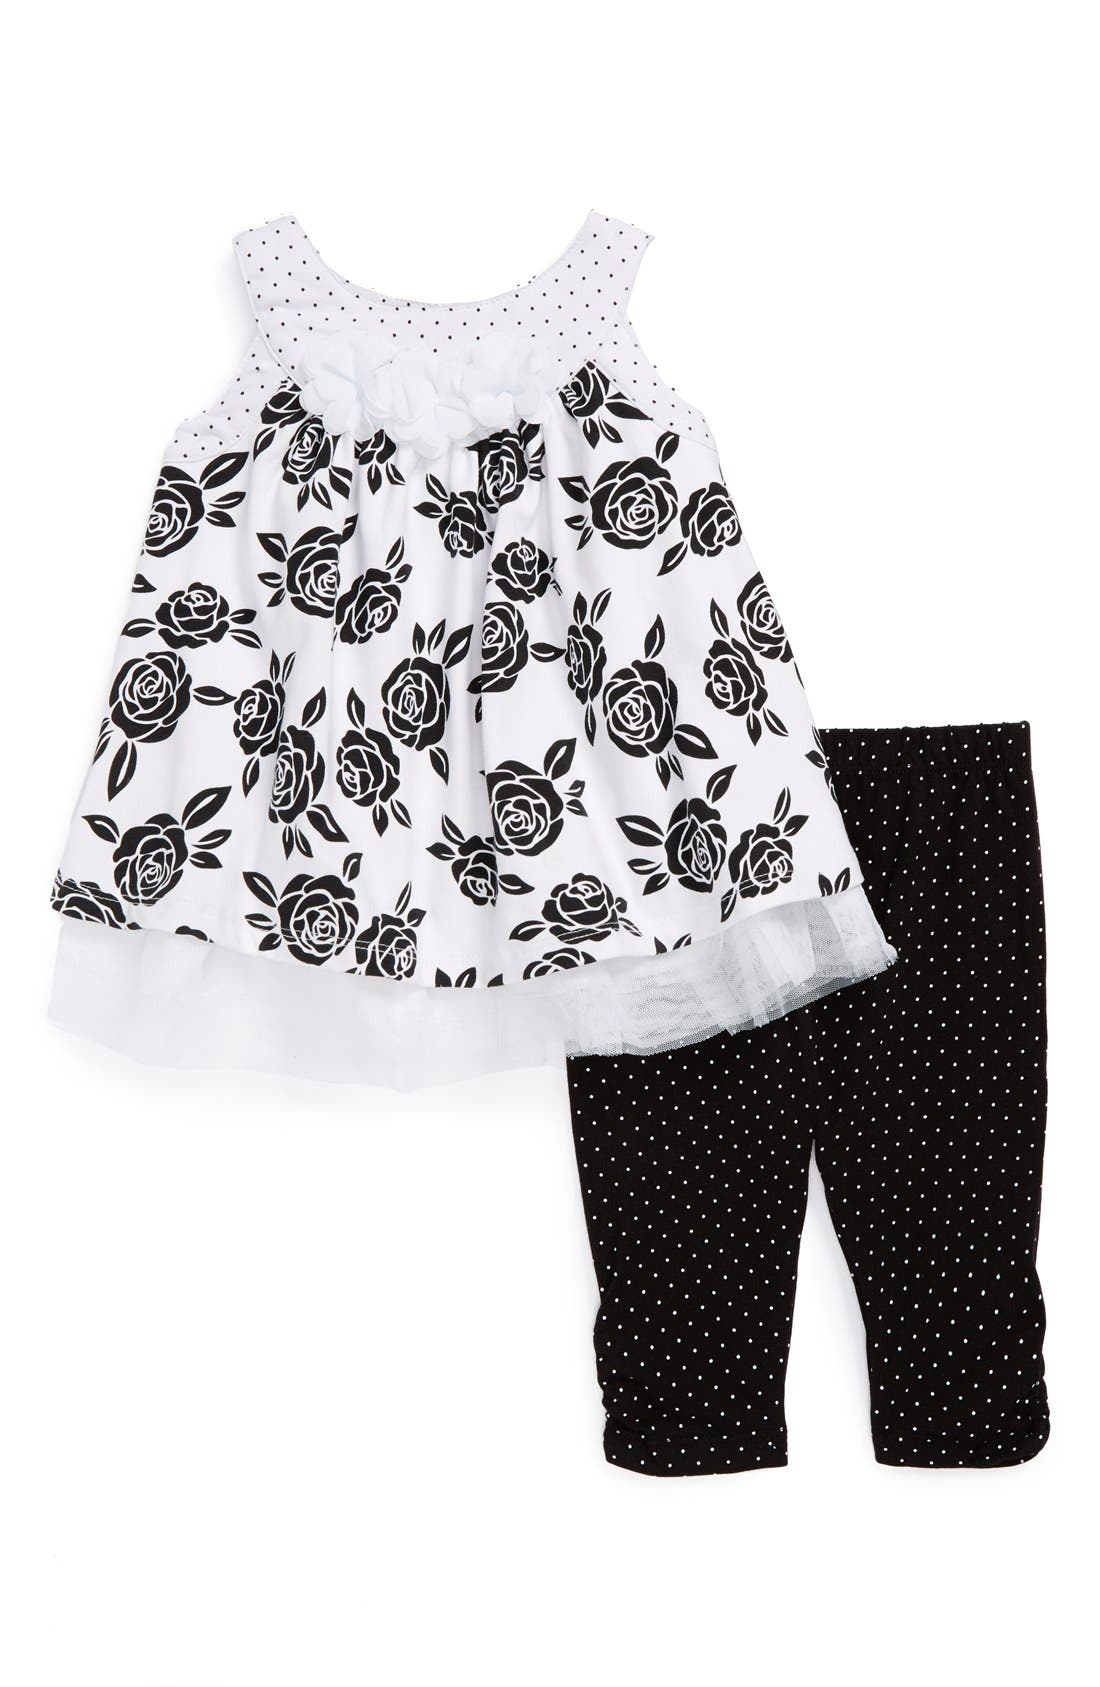 Alternate Image 1 Selected - Little Me 'Rose' Tunic & Leggings (Baby Girls)